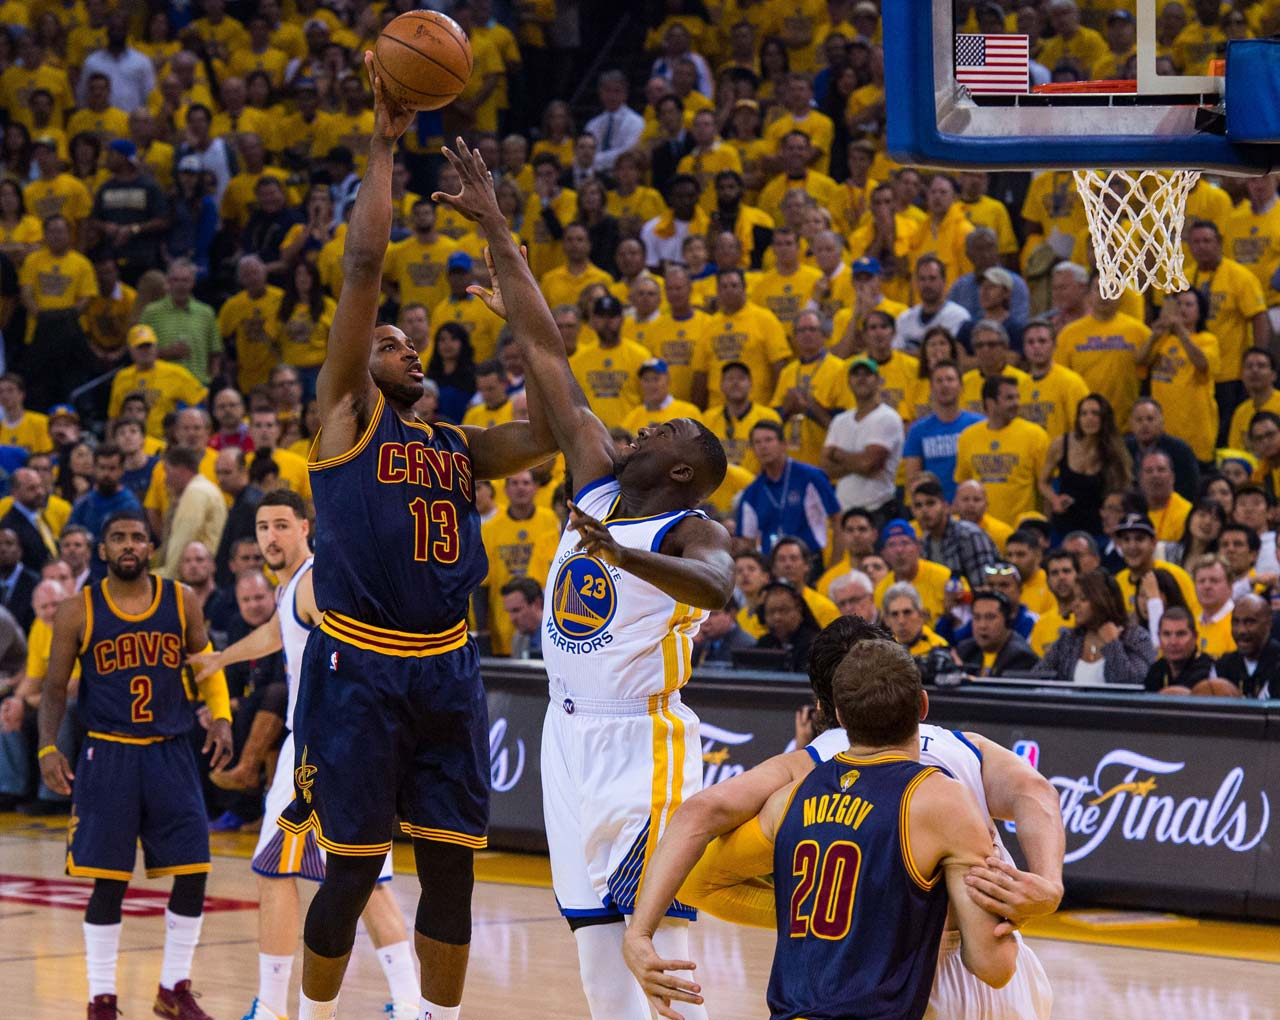 Tristan Thompson played a team-high 47 minutes for Cleveland, scoring two points and pulling down 15 rebounds.